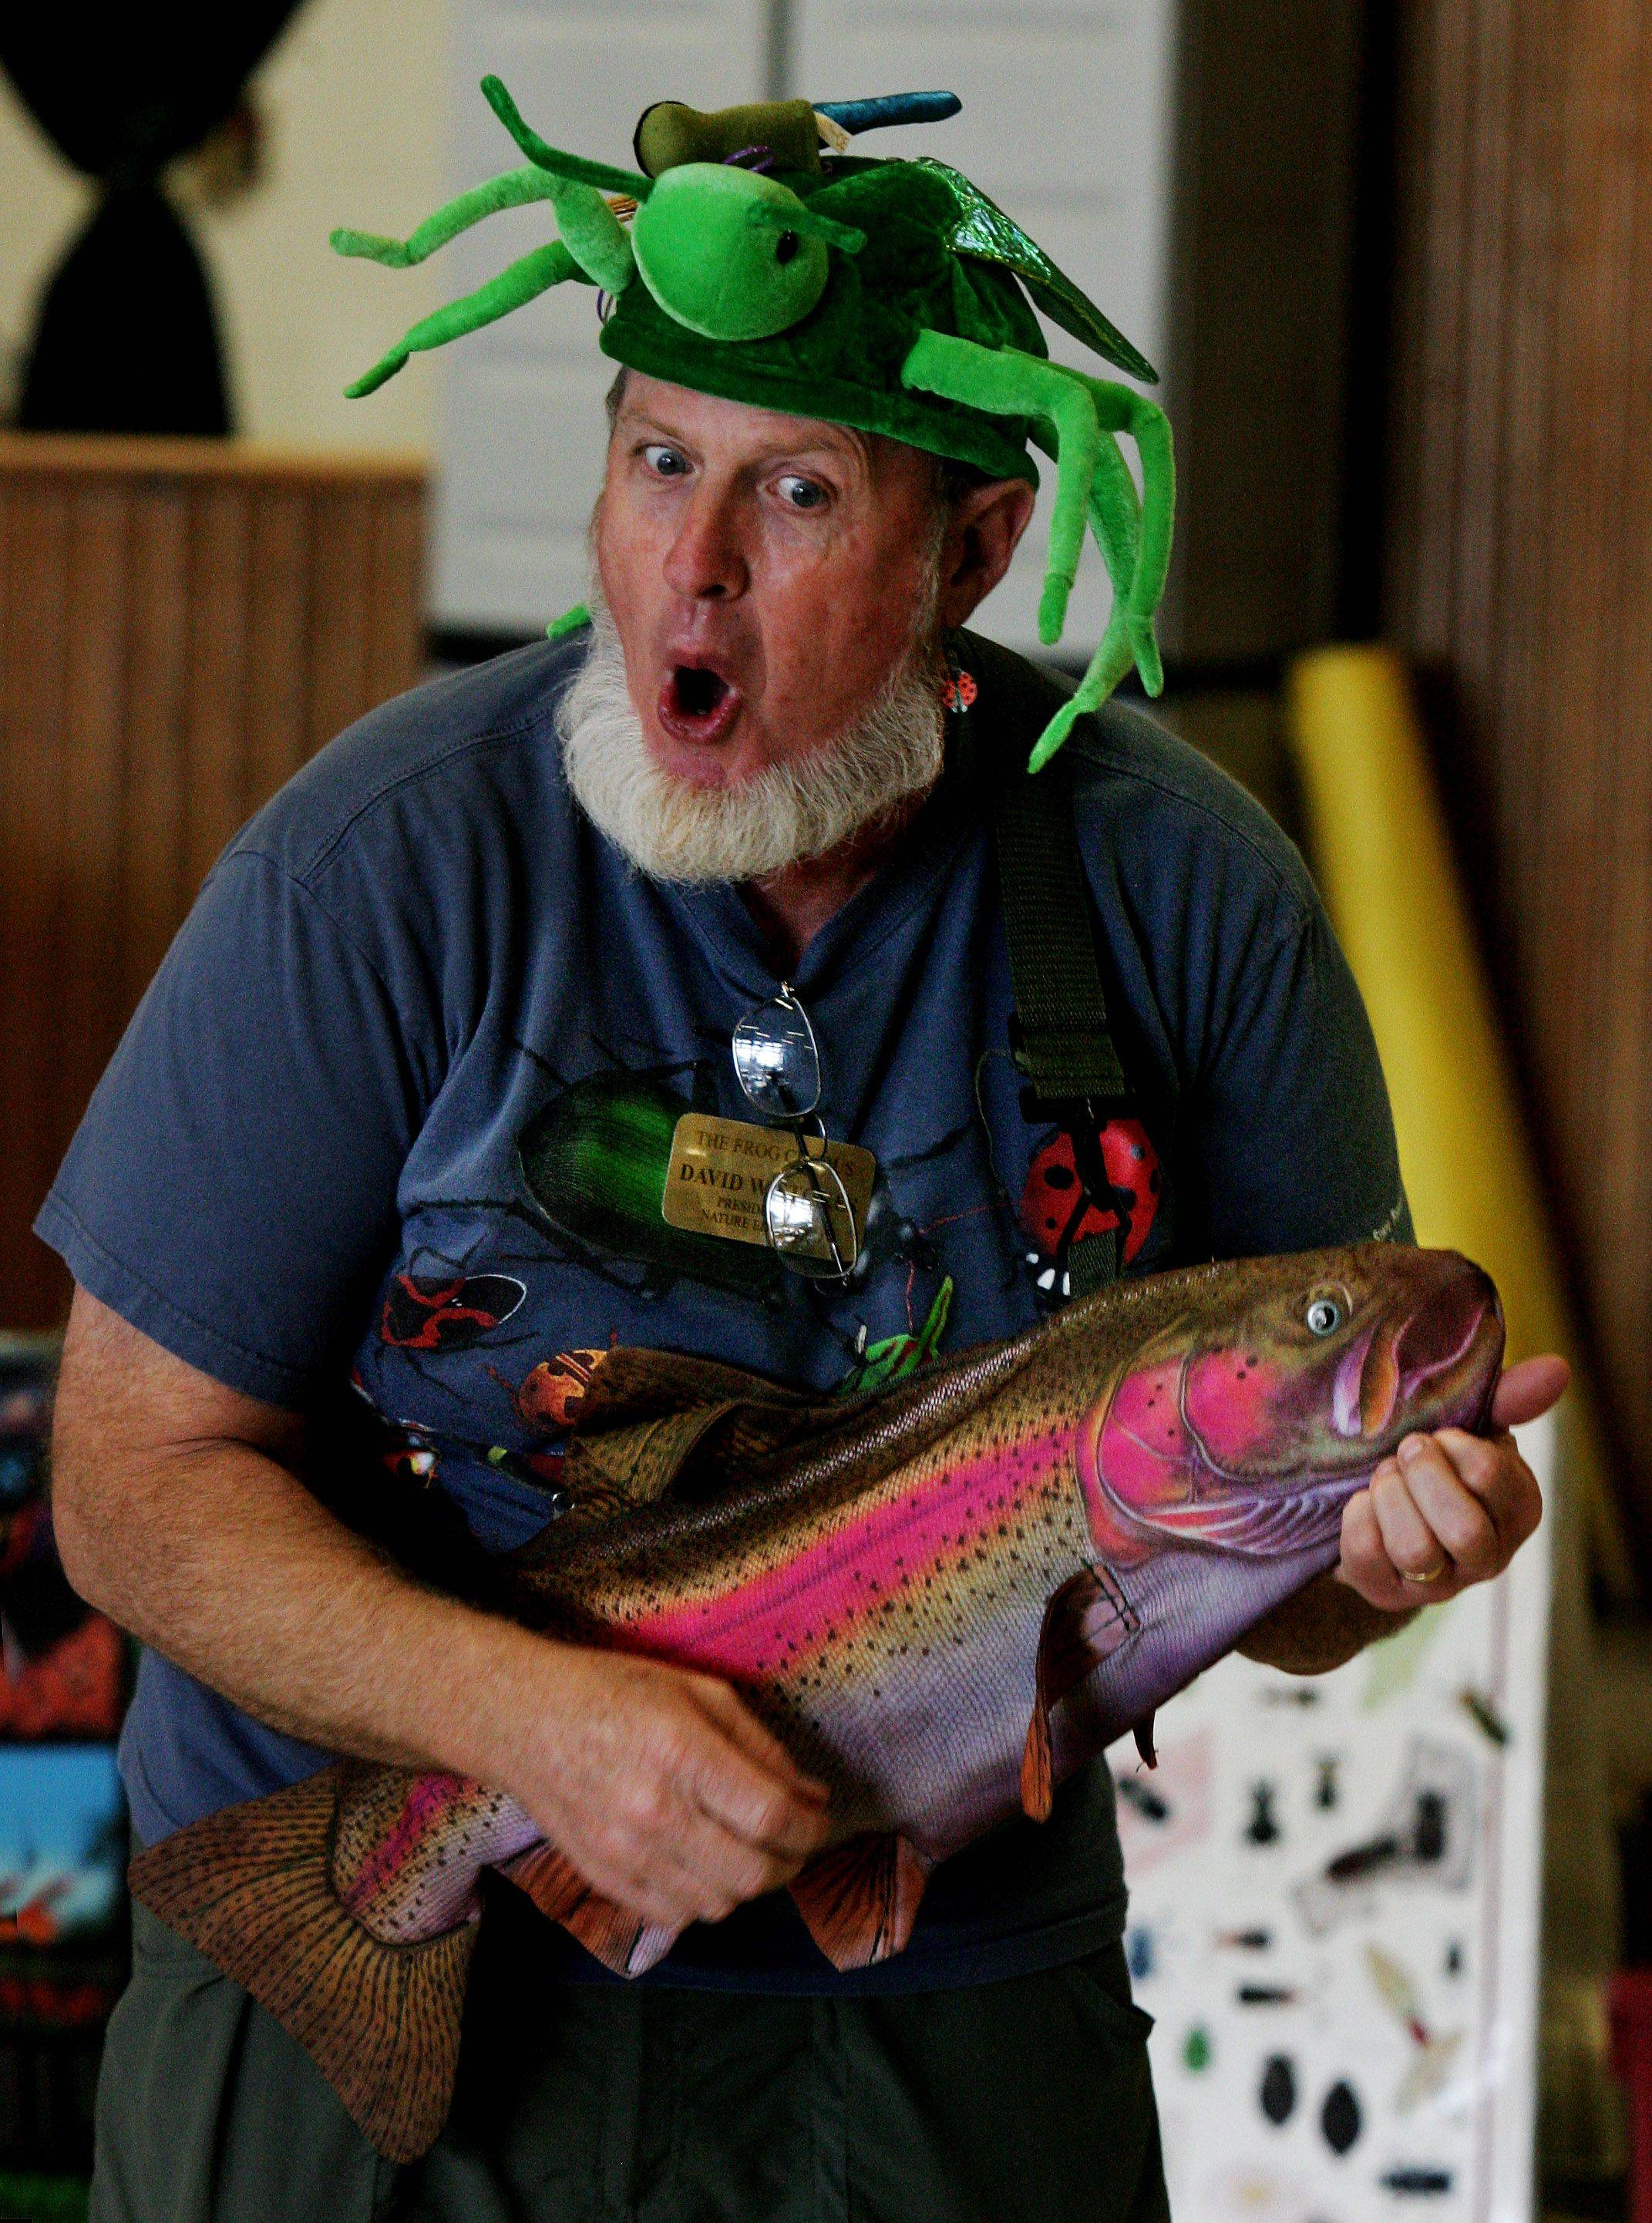 Naturalist David Stokes plays a trout guitar and wears a grasshopper hat while entertaining kindergarten students and teaching them about bugs and insects Tuesday at Woodland Primary School in Gurnee.